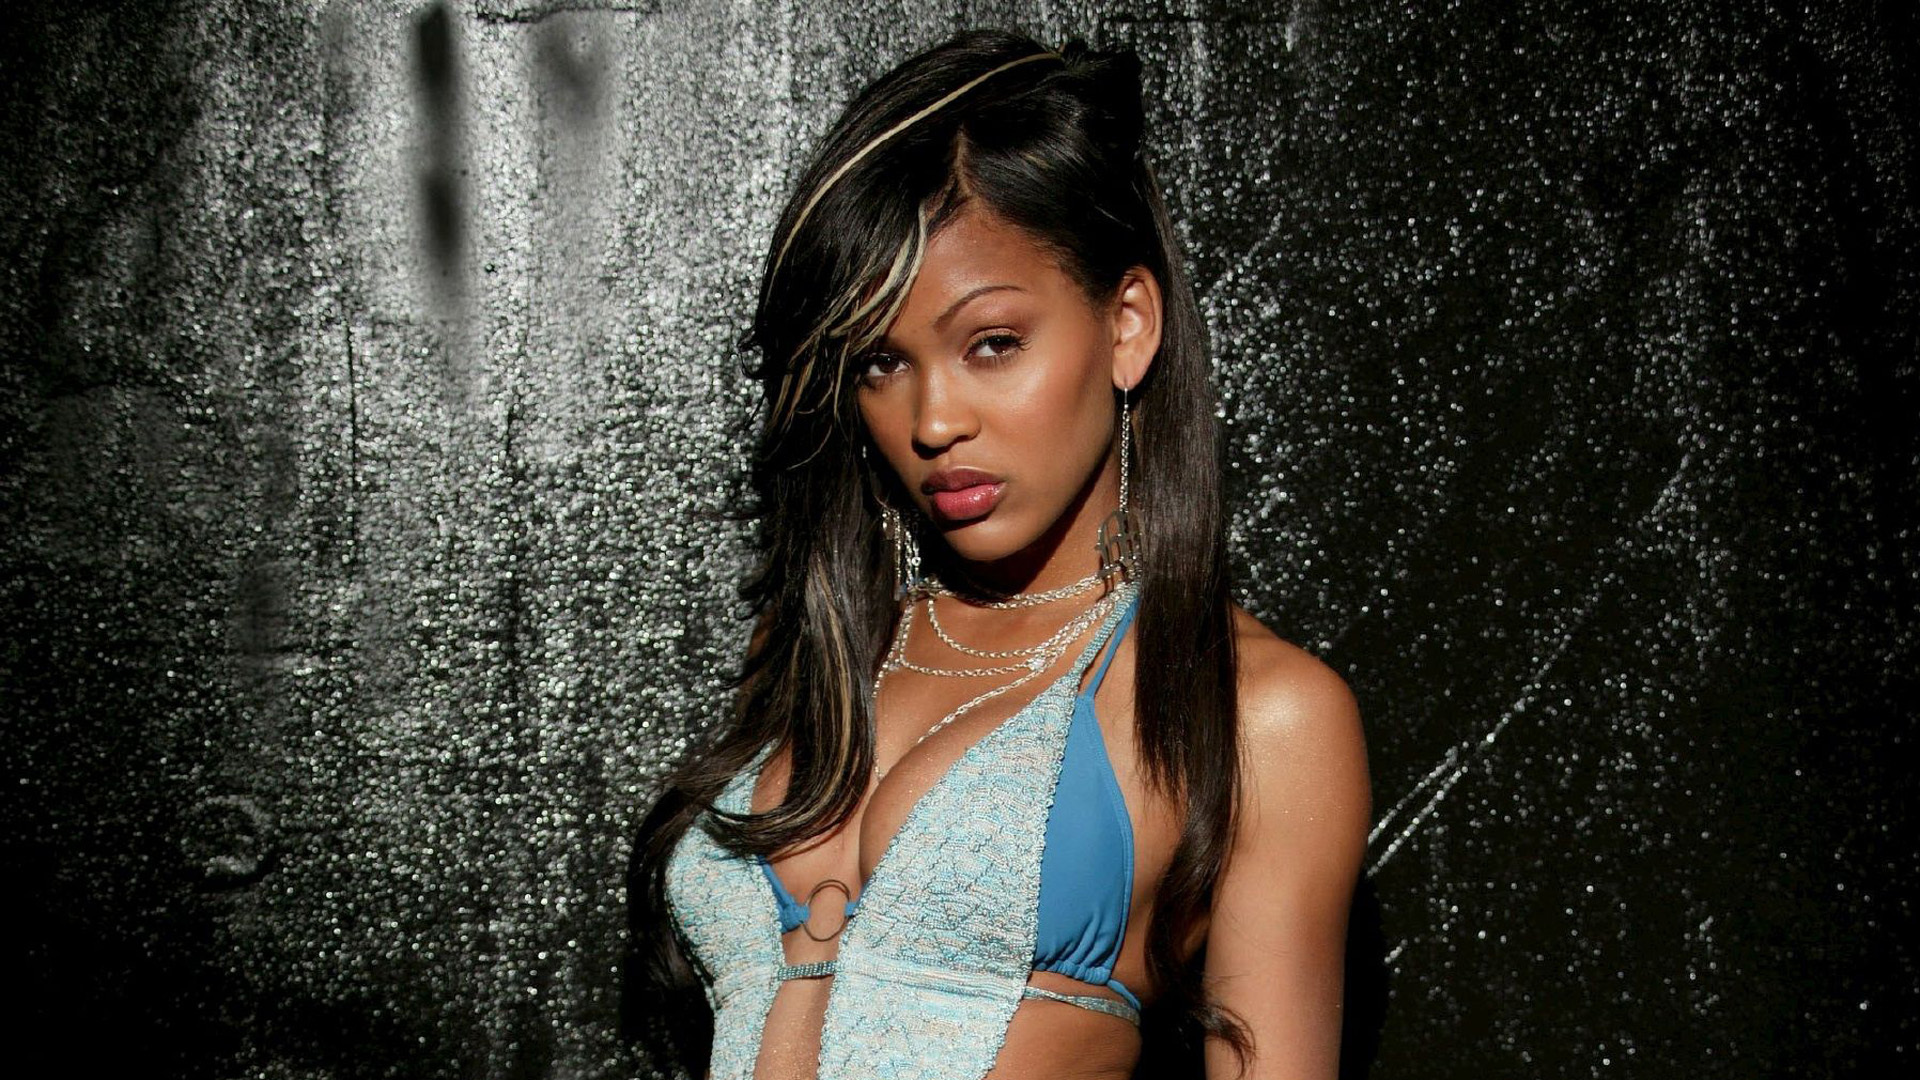 Meagan Good Wallpaper For Computer